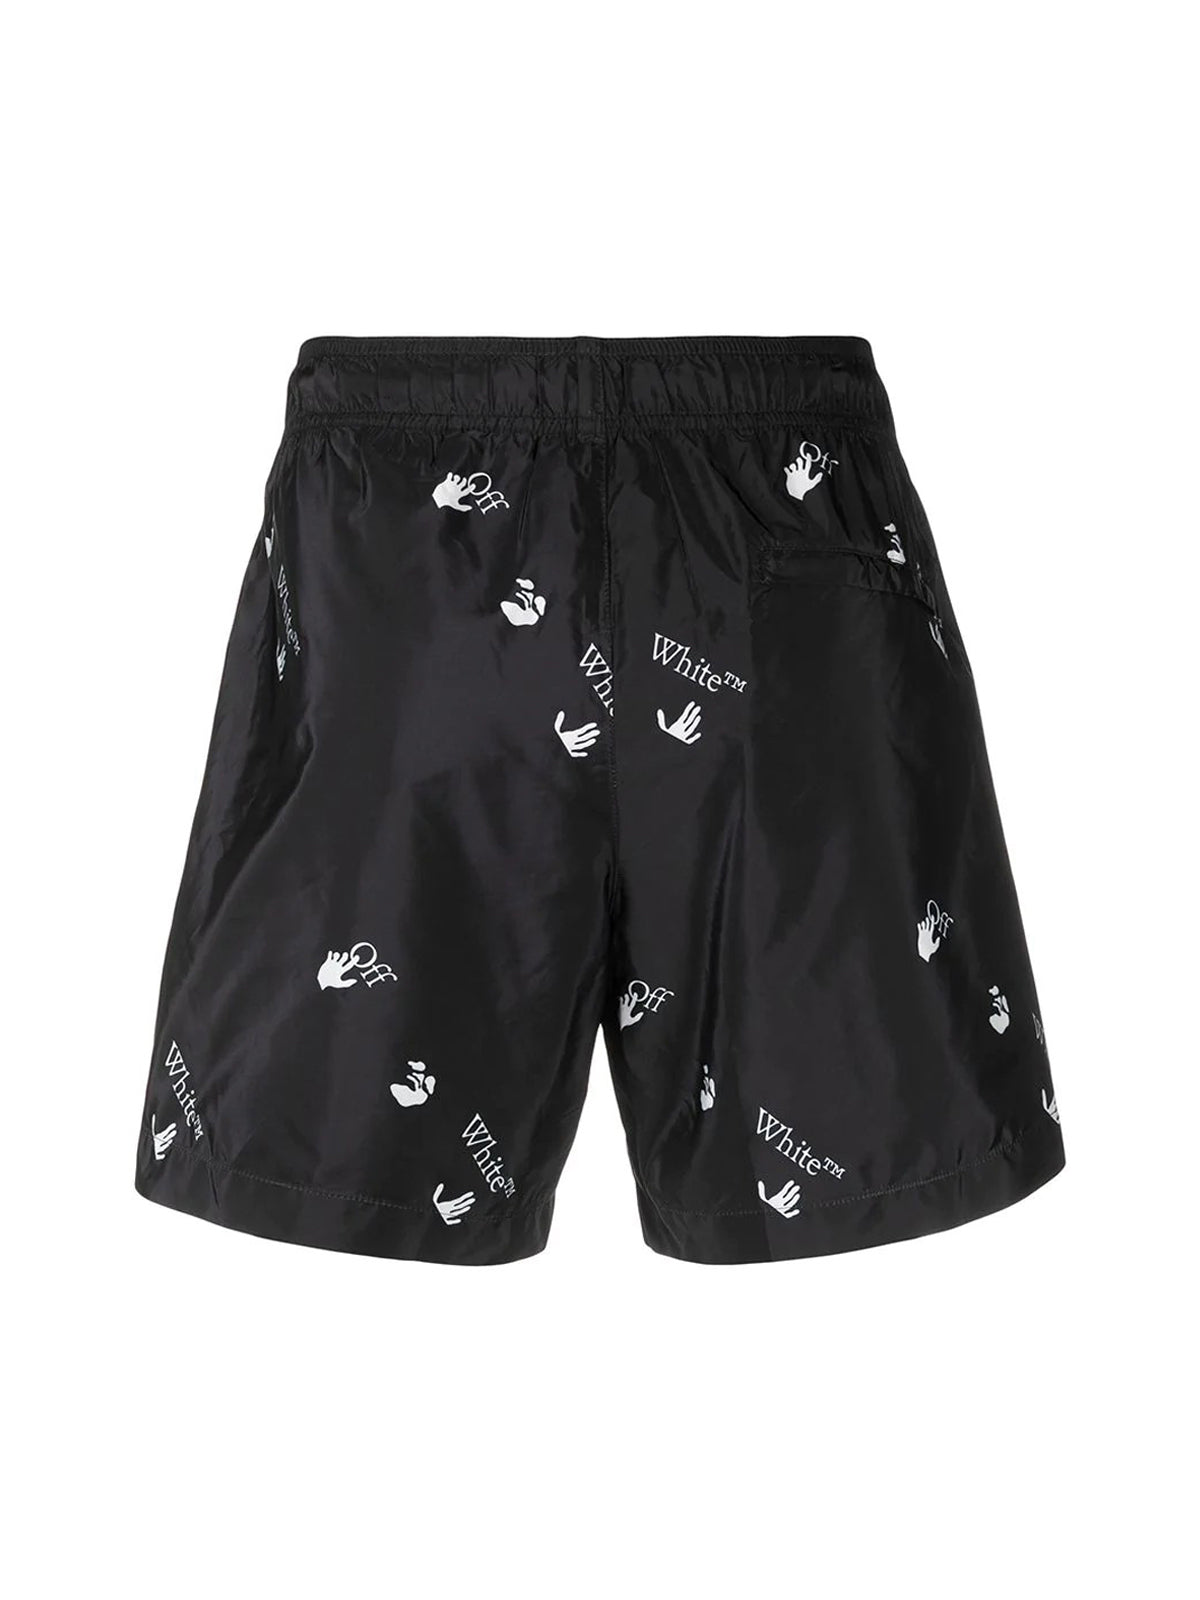 OW logo-print swimming shorts